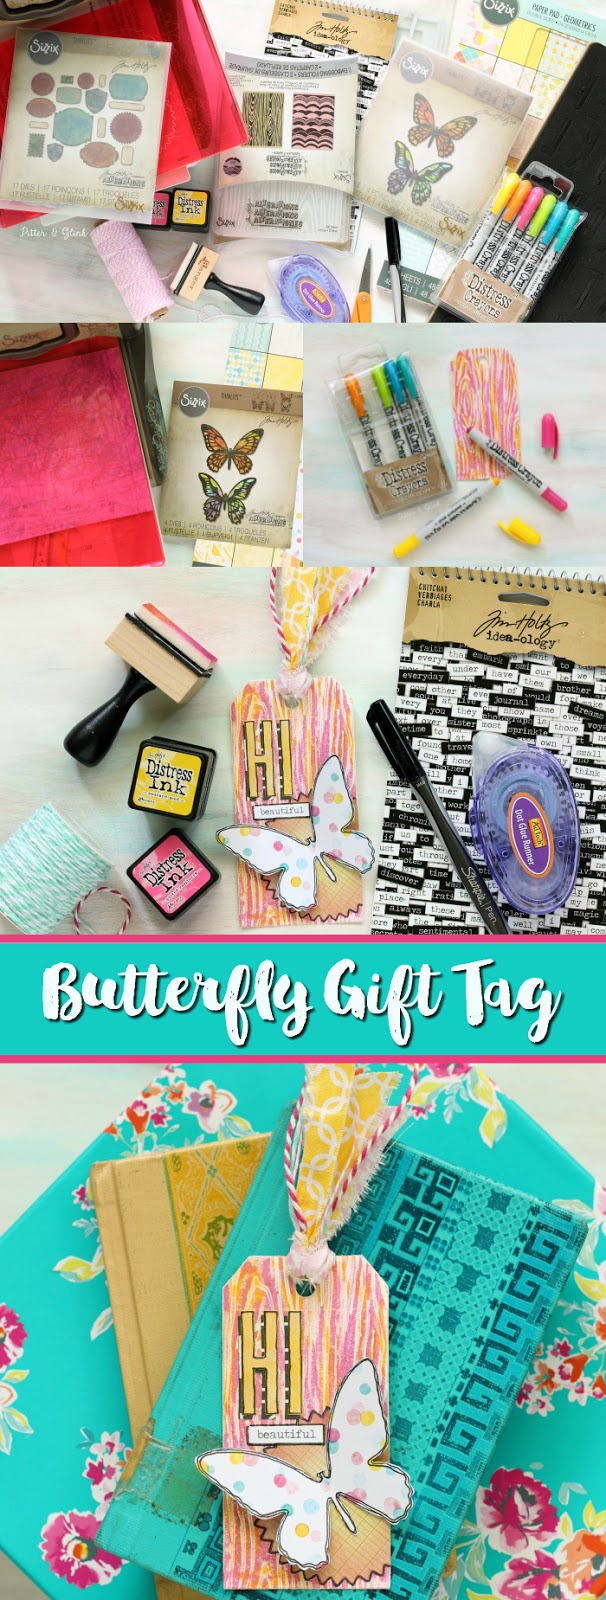 Make a Colorful Butterfly Gift Tag using the Sizzix BIGkick, various dies, paper leather, distress crayons & ink, and a little imagination! | pitterandglink.com